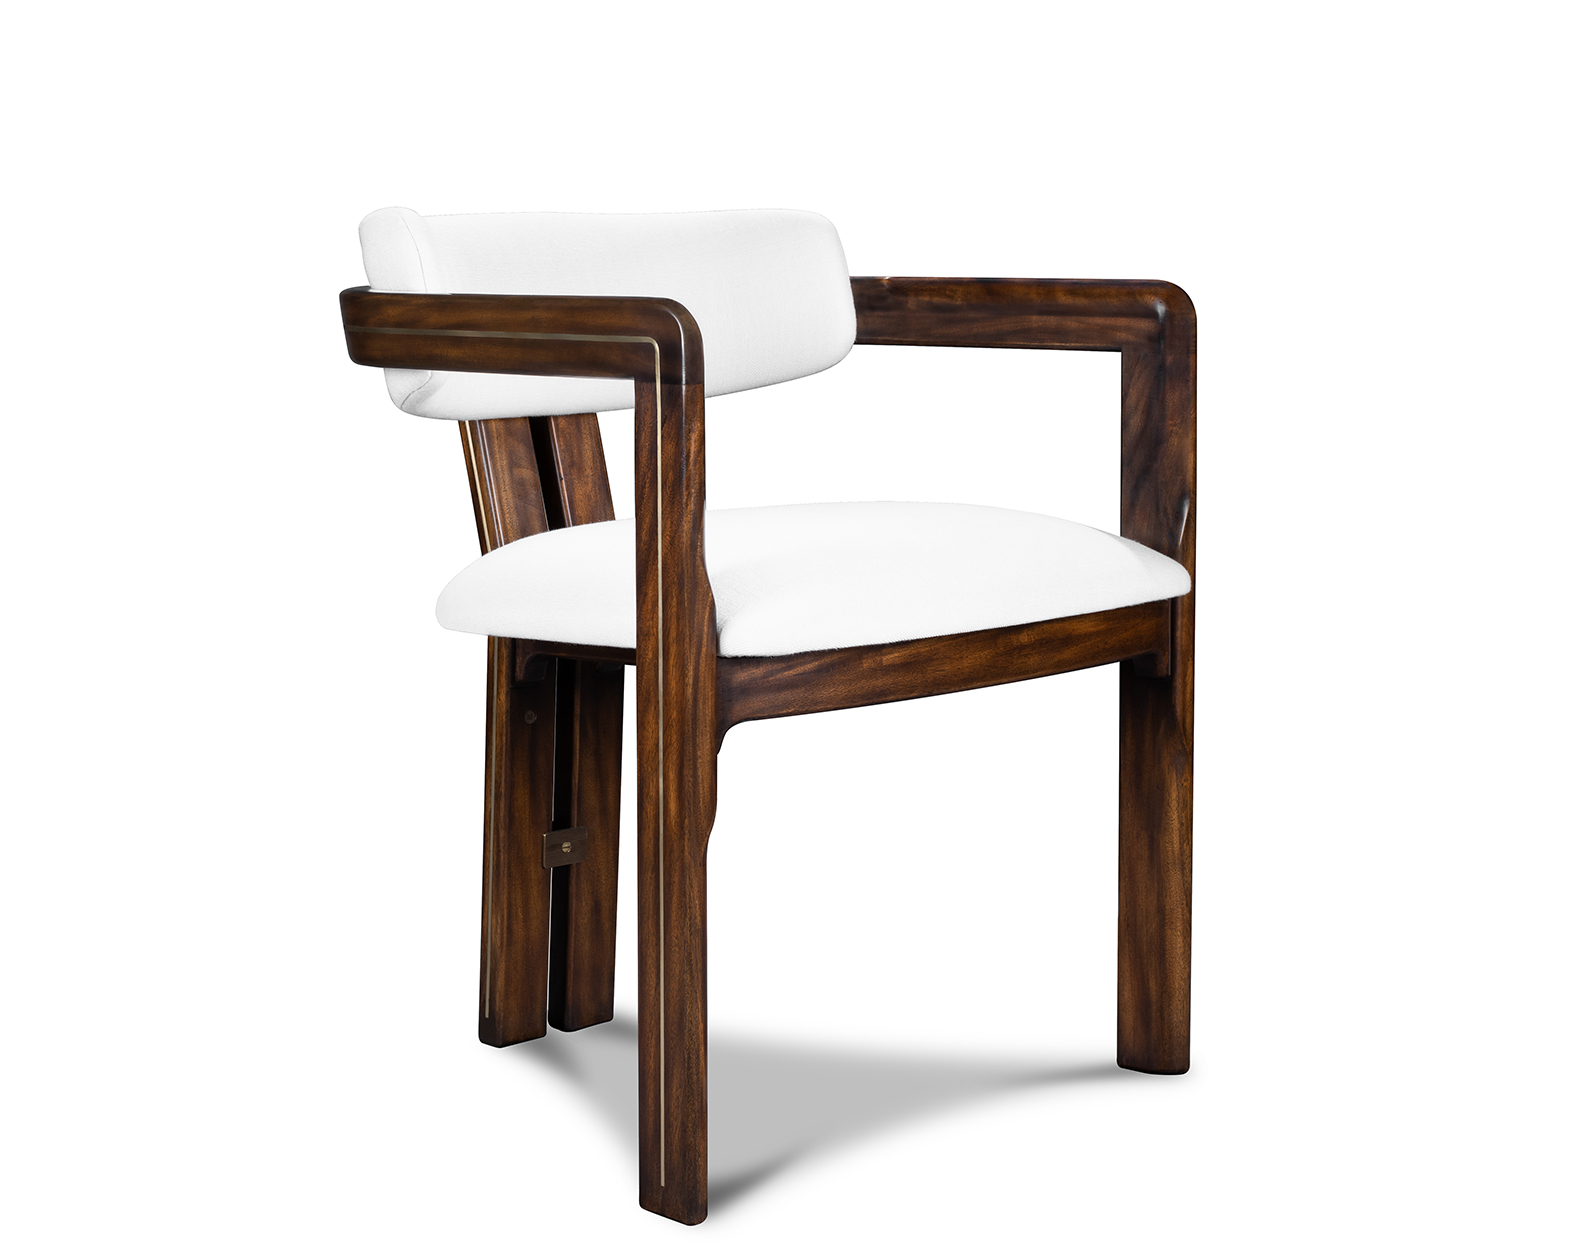 LILLE CHAIR